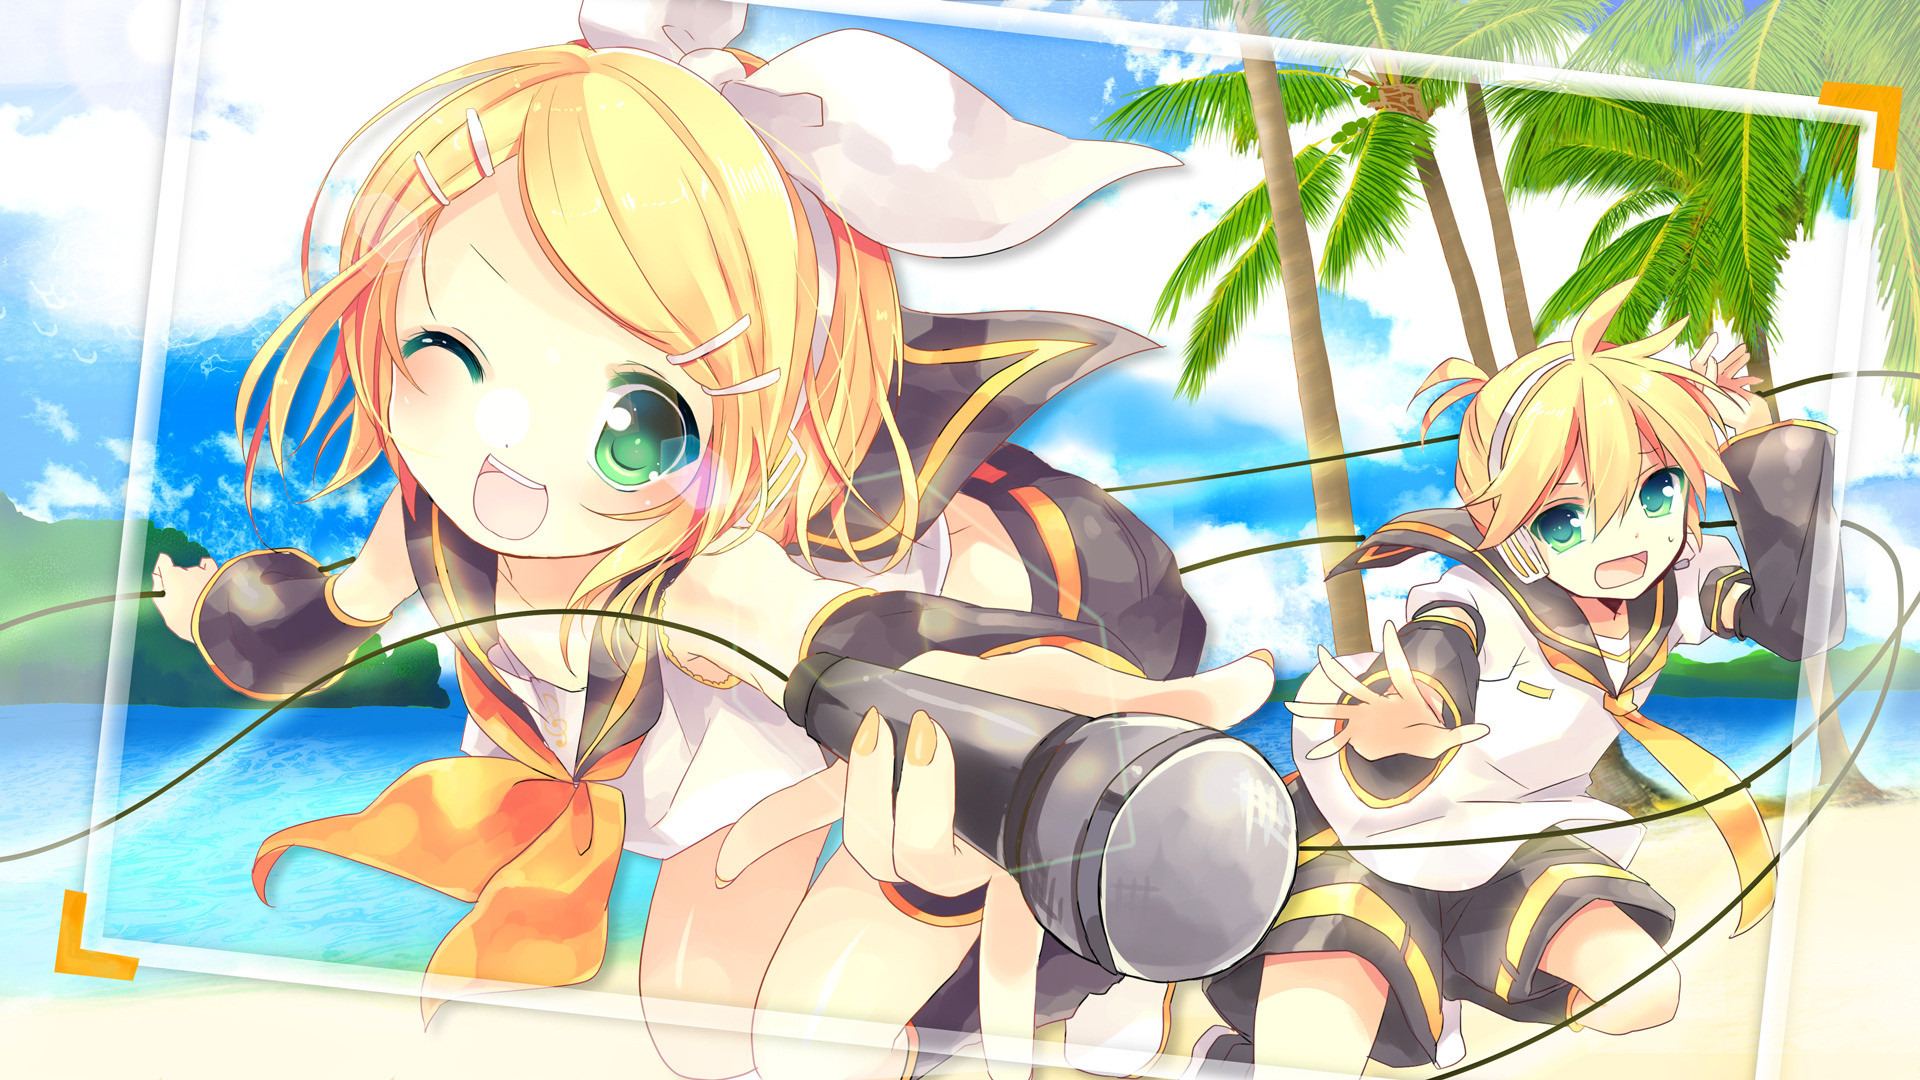 Res: 1920x1080, Kagamine Mirrors · download Kagamine Mirrors image